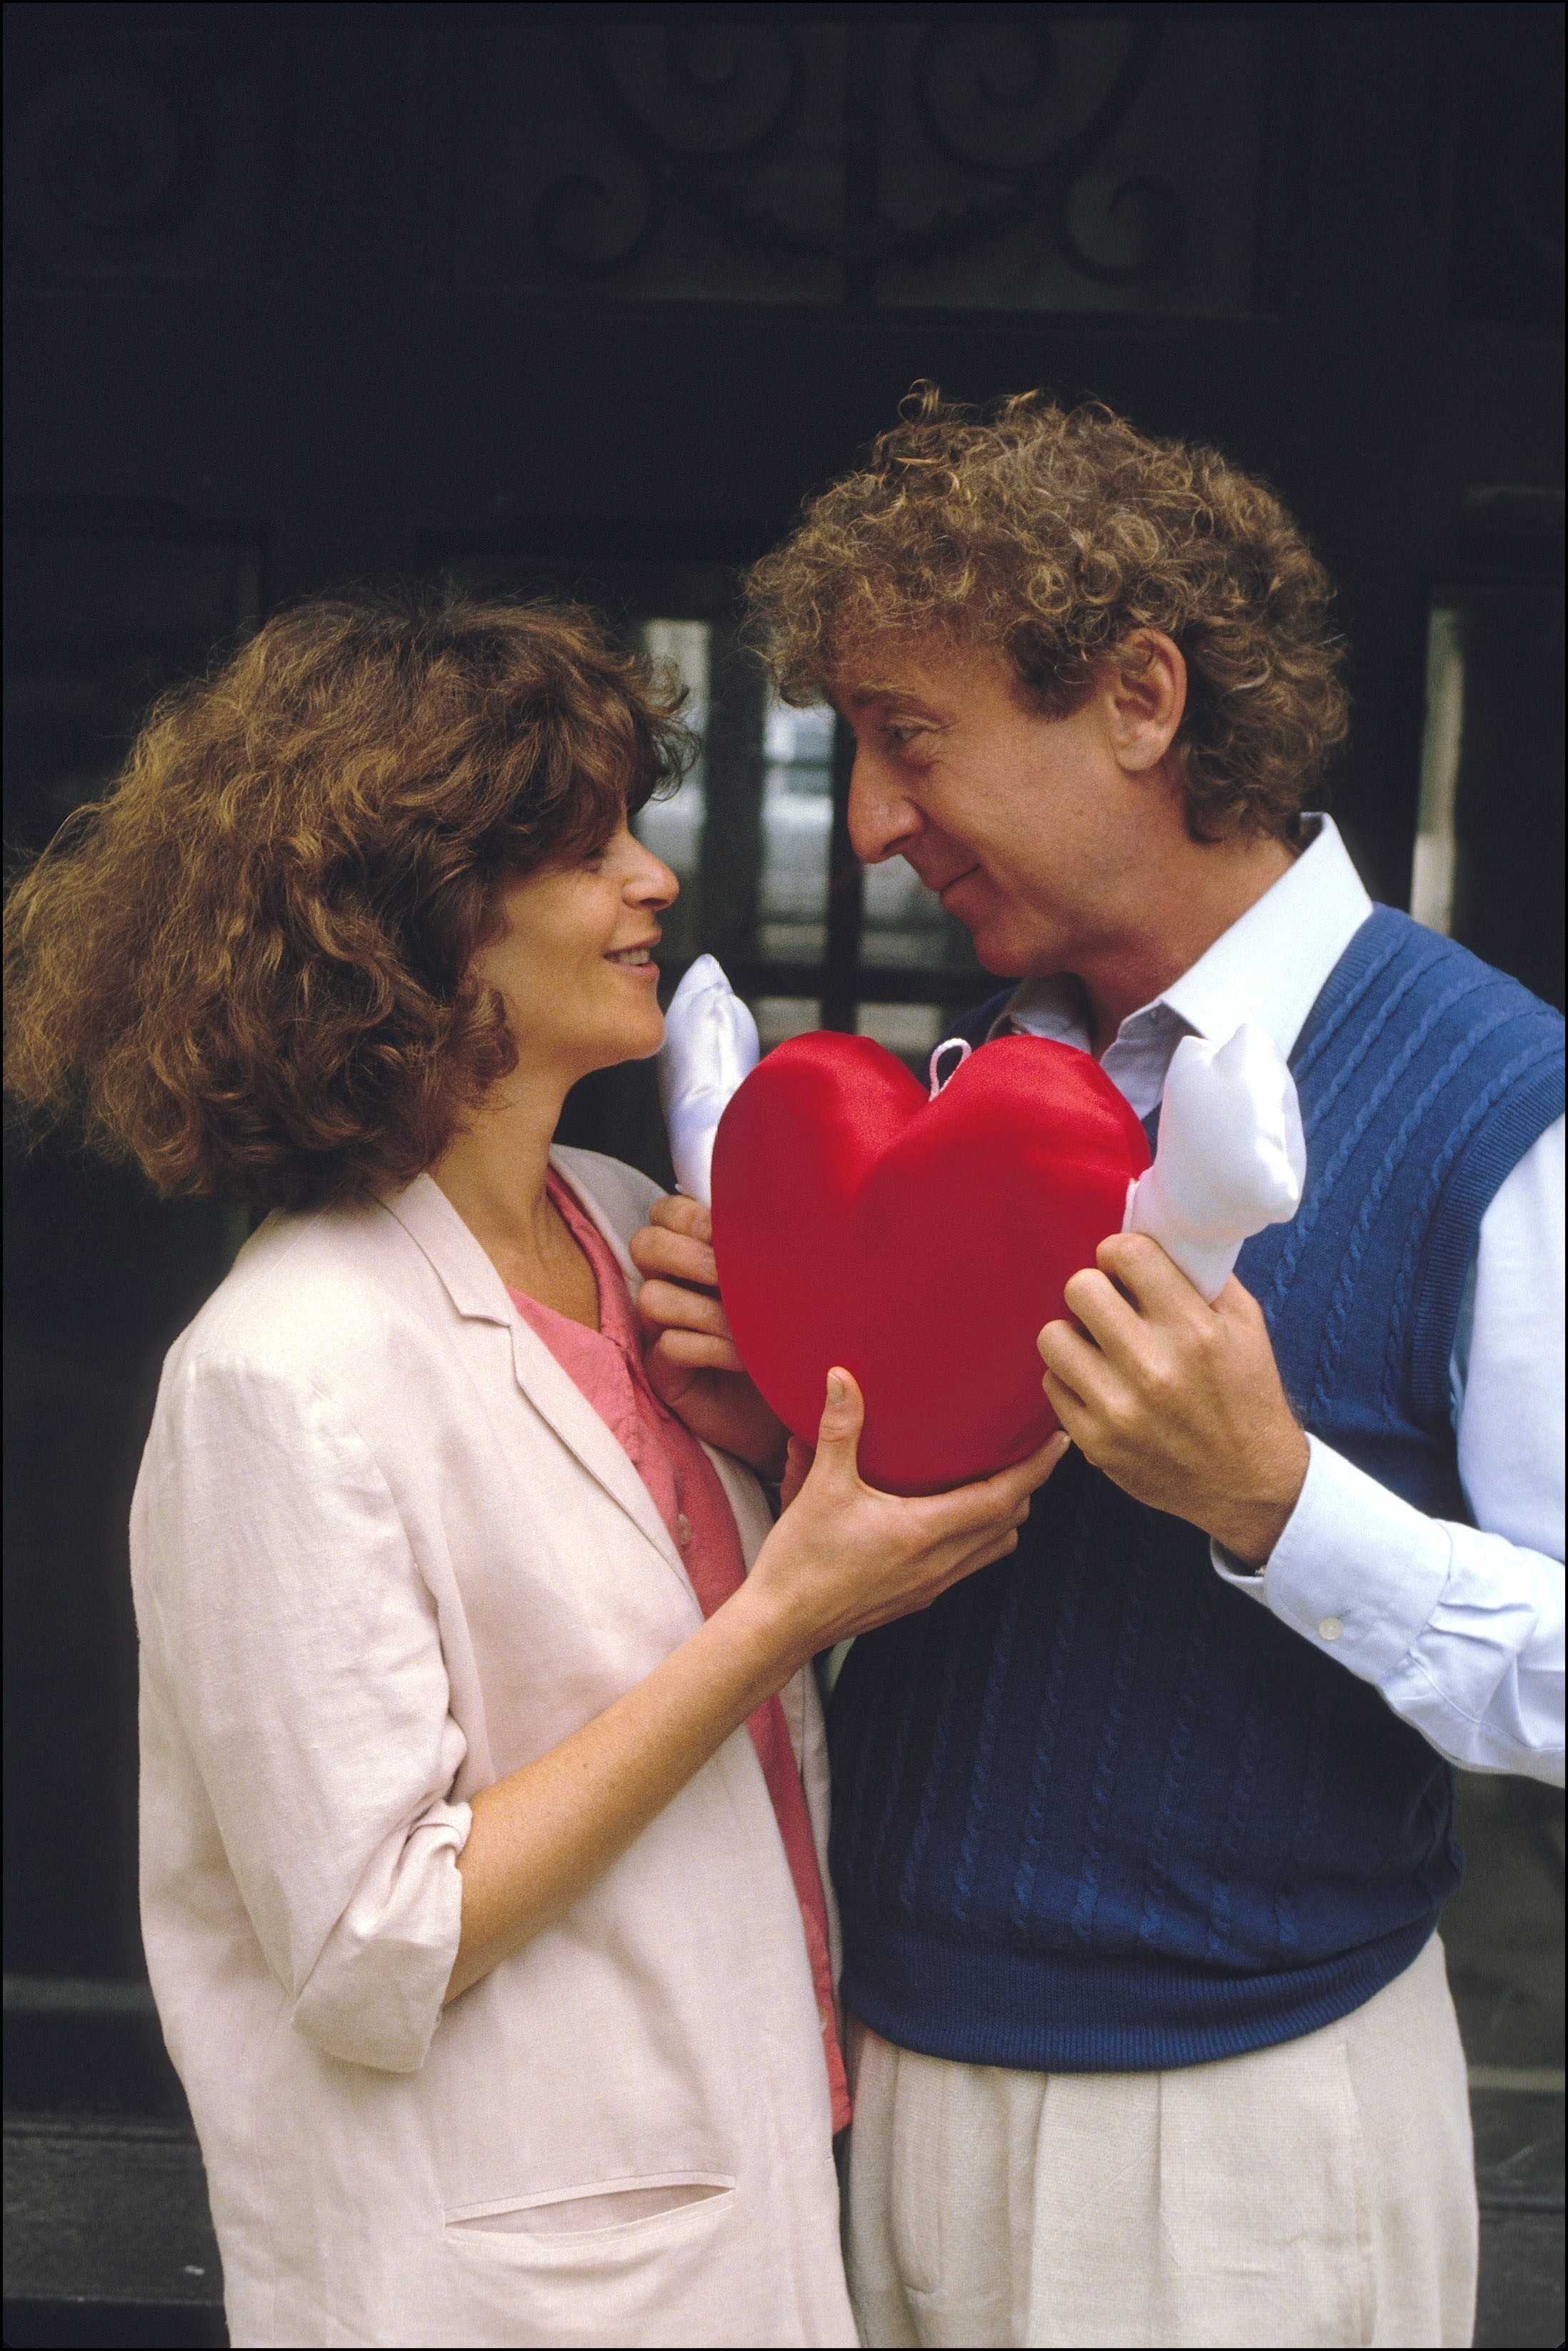 Wilder and Radner holding a red heart together during the 1980s. | Photo Getty Images